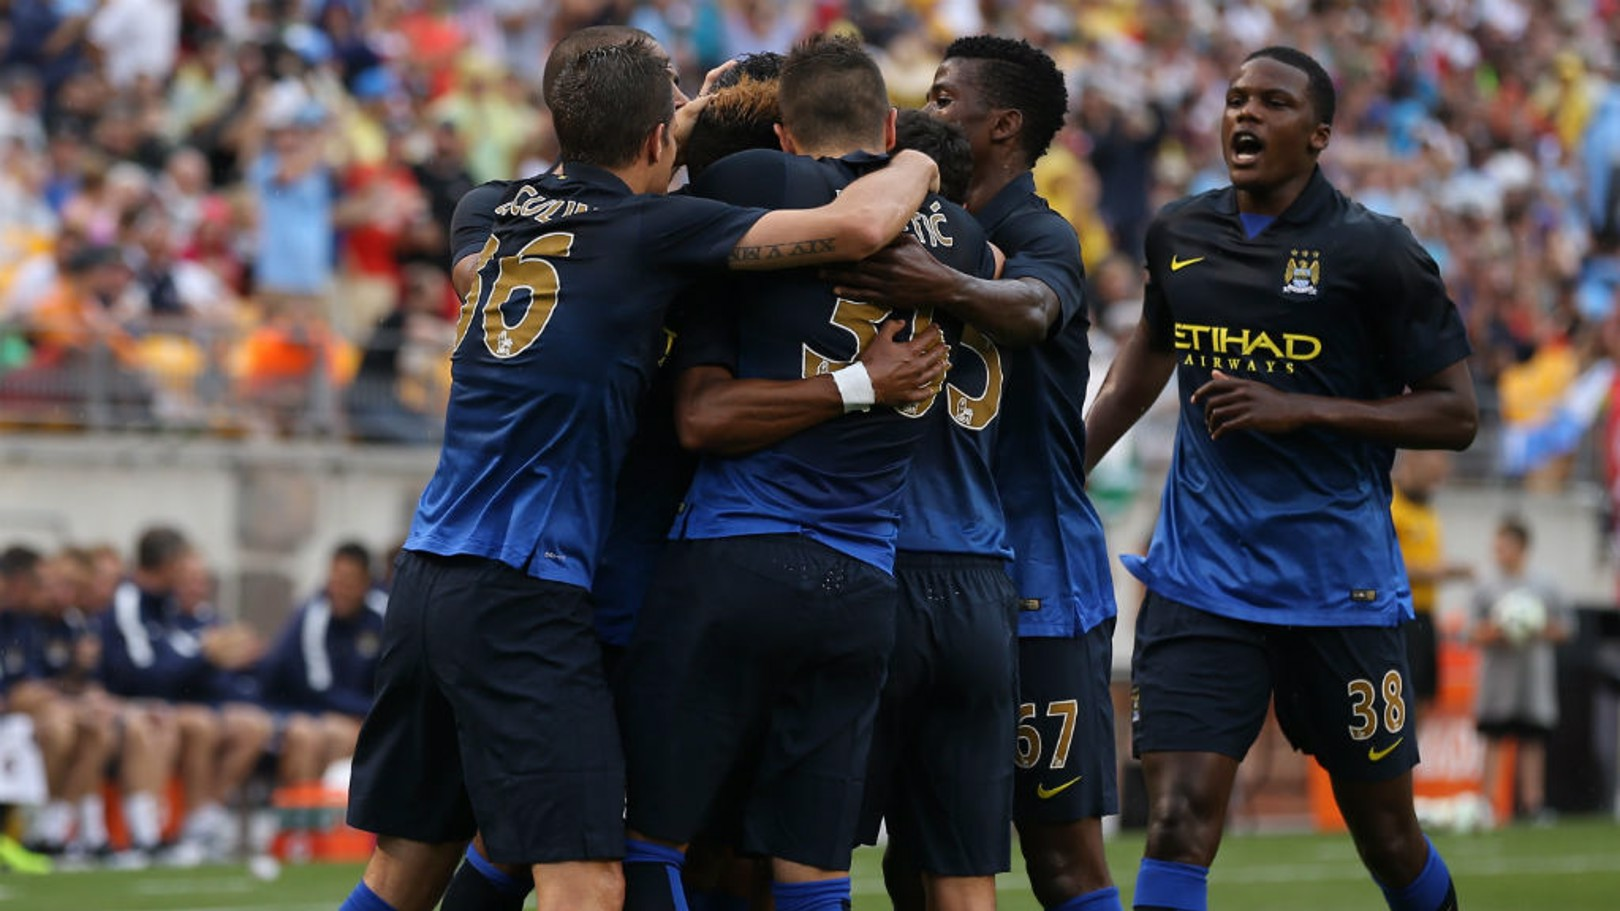 ROUT: City celebrate during their 5-1 victory over Milan in 2014